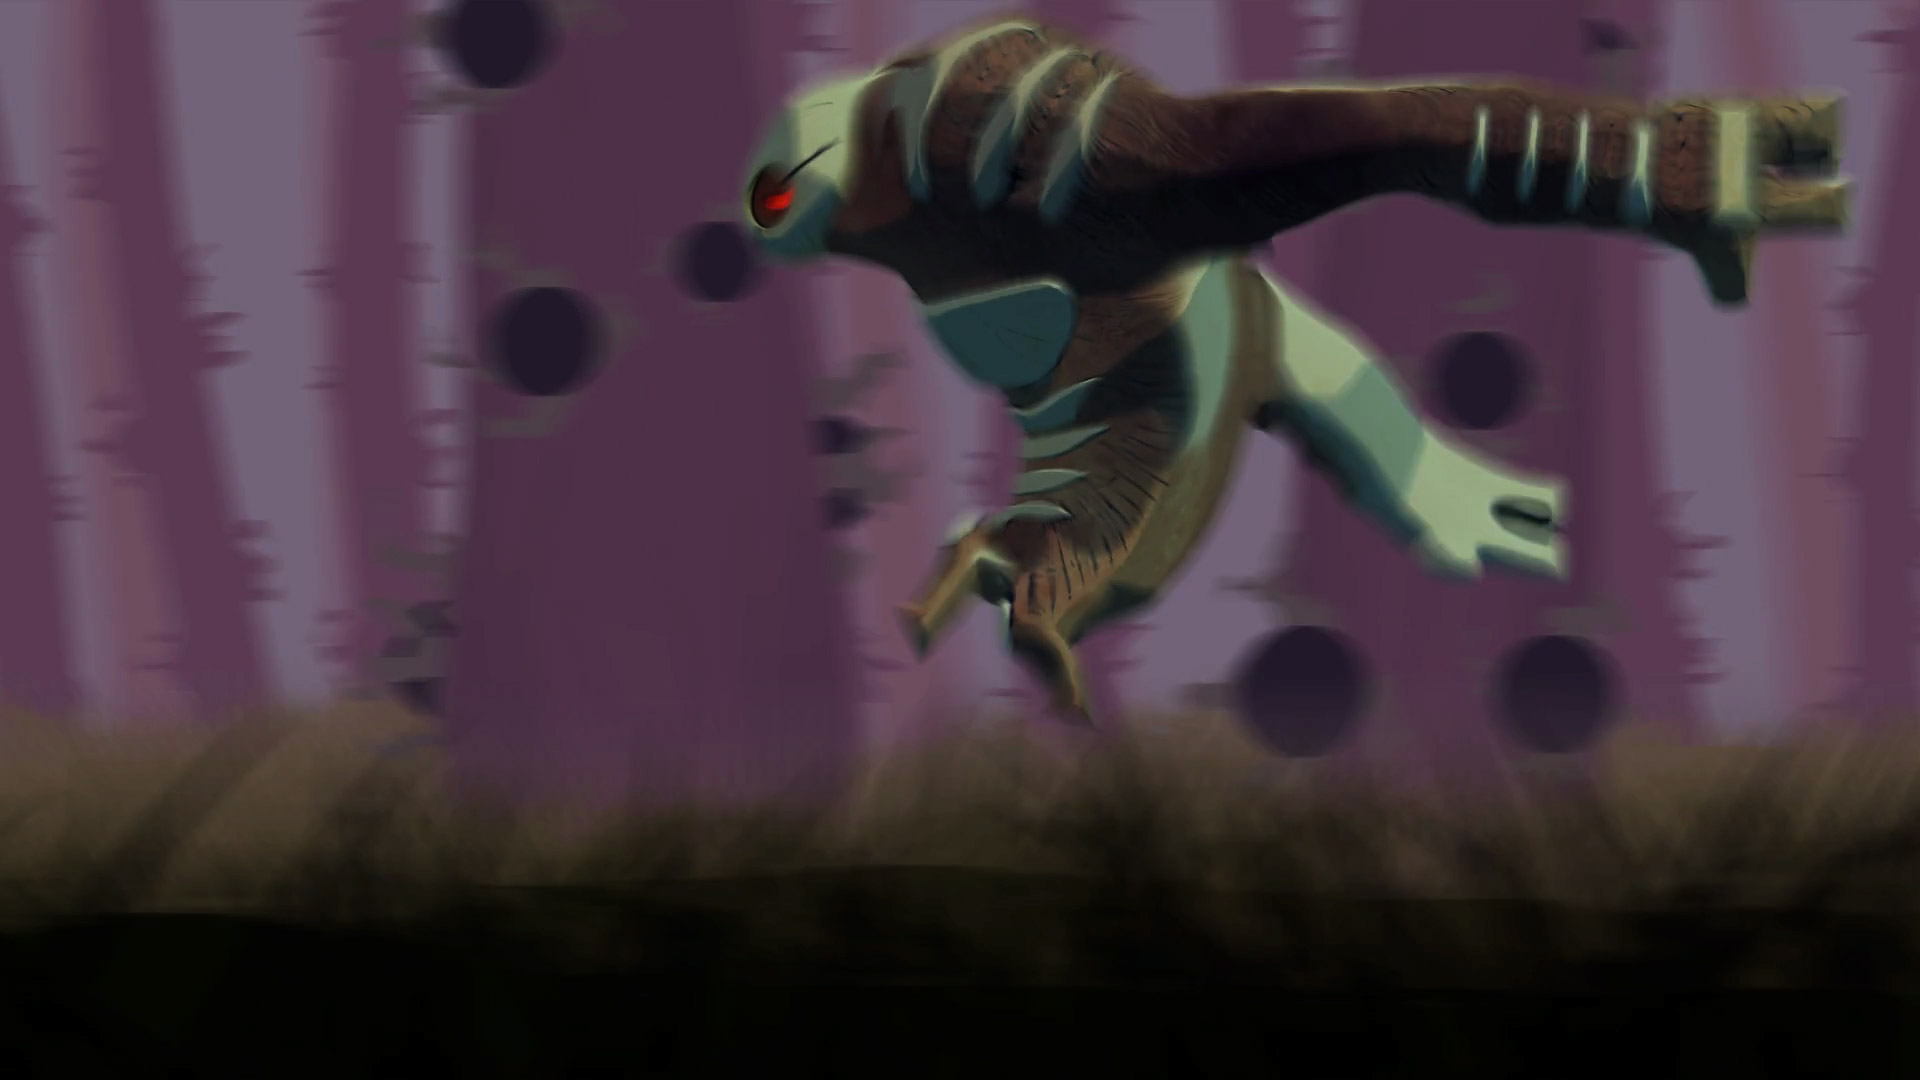 awesome-sci-fi-animated-short-the-guardians-tale-03.jpg